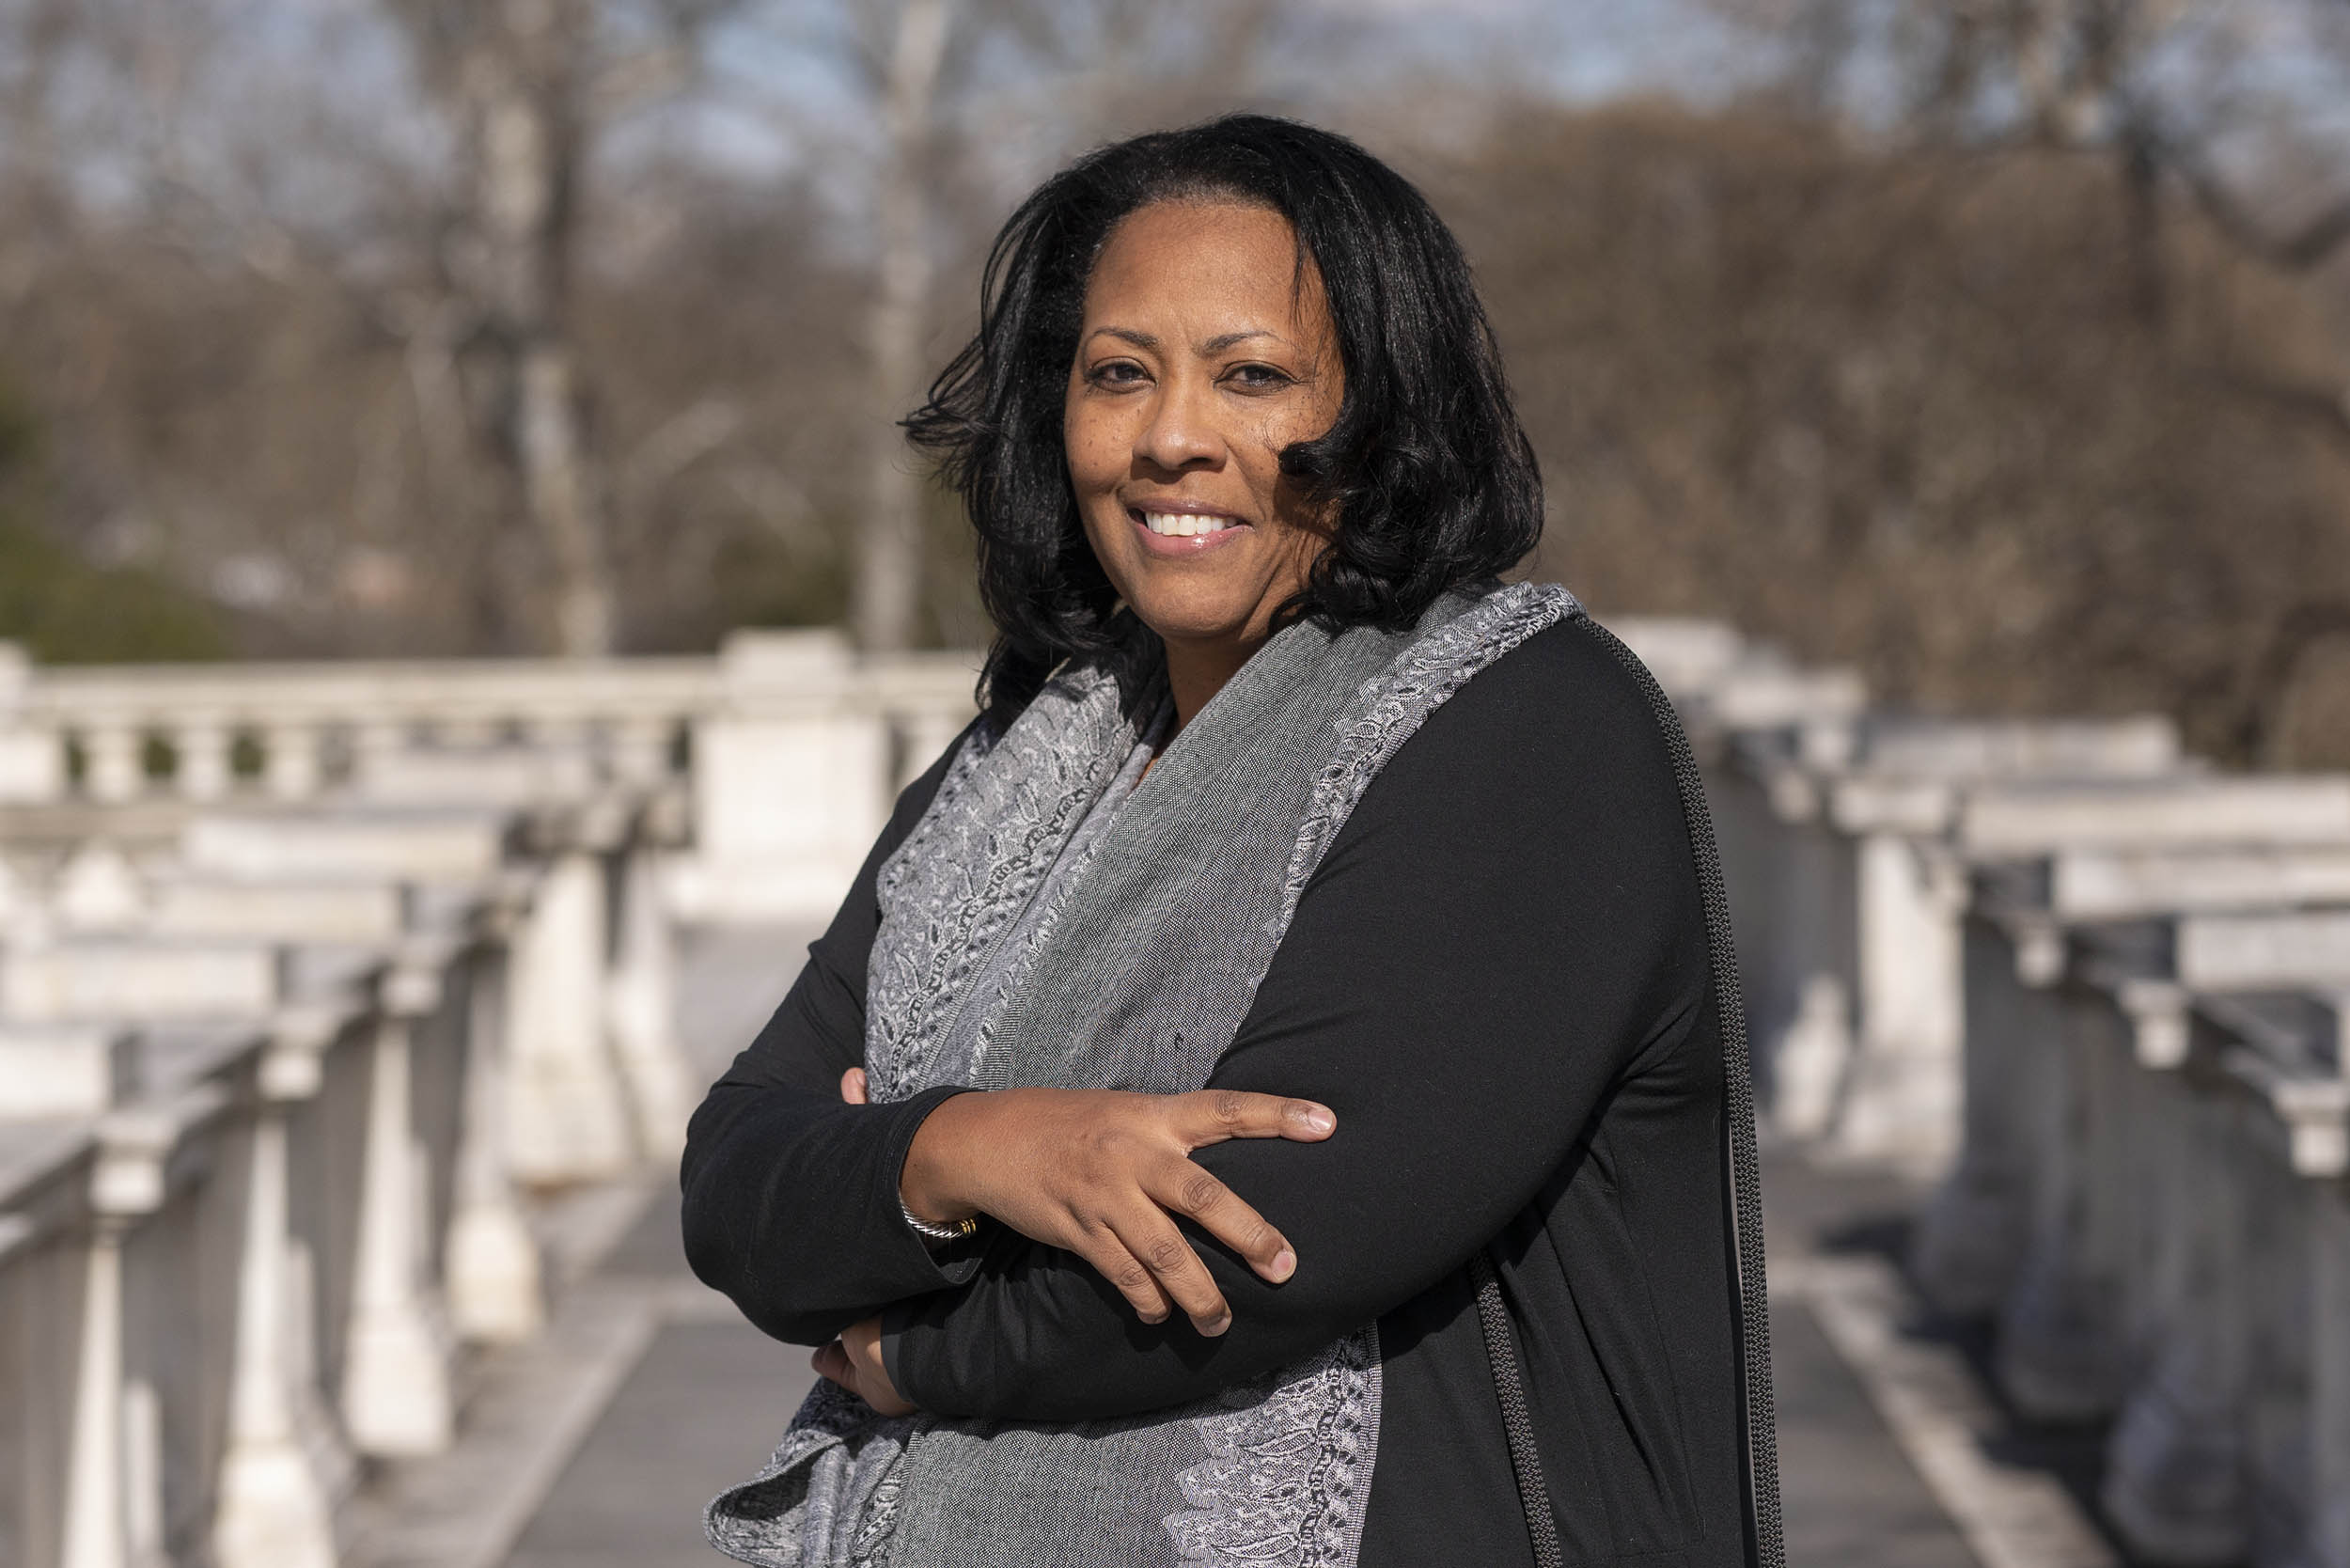 Benita Mayo plans to develop a documentary photo series addressing the health disparities African American women face during pregnancy and birth. (Photo by Sanjay Suchak, University Communications)